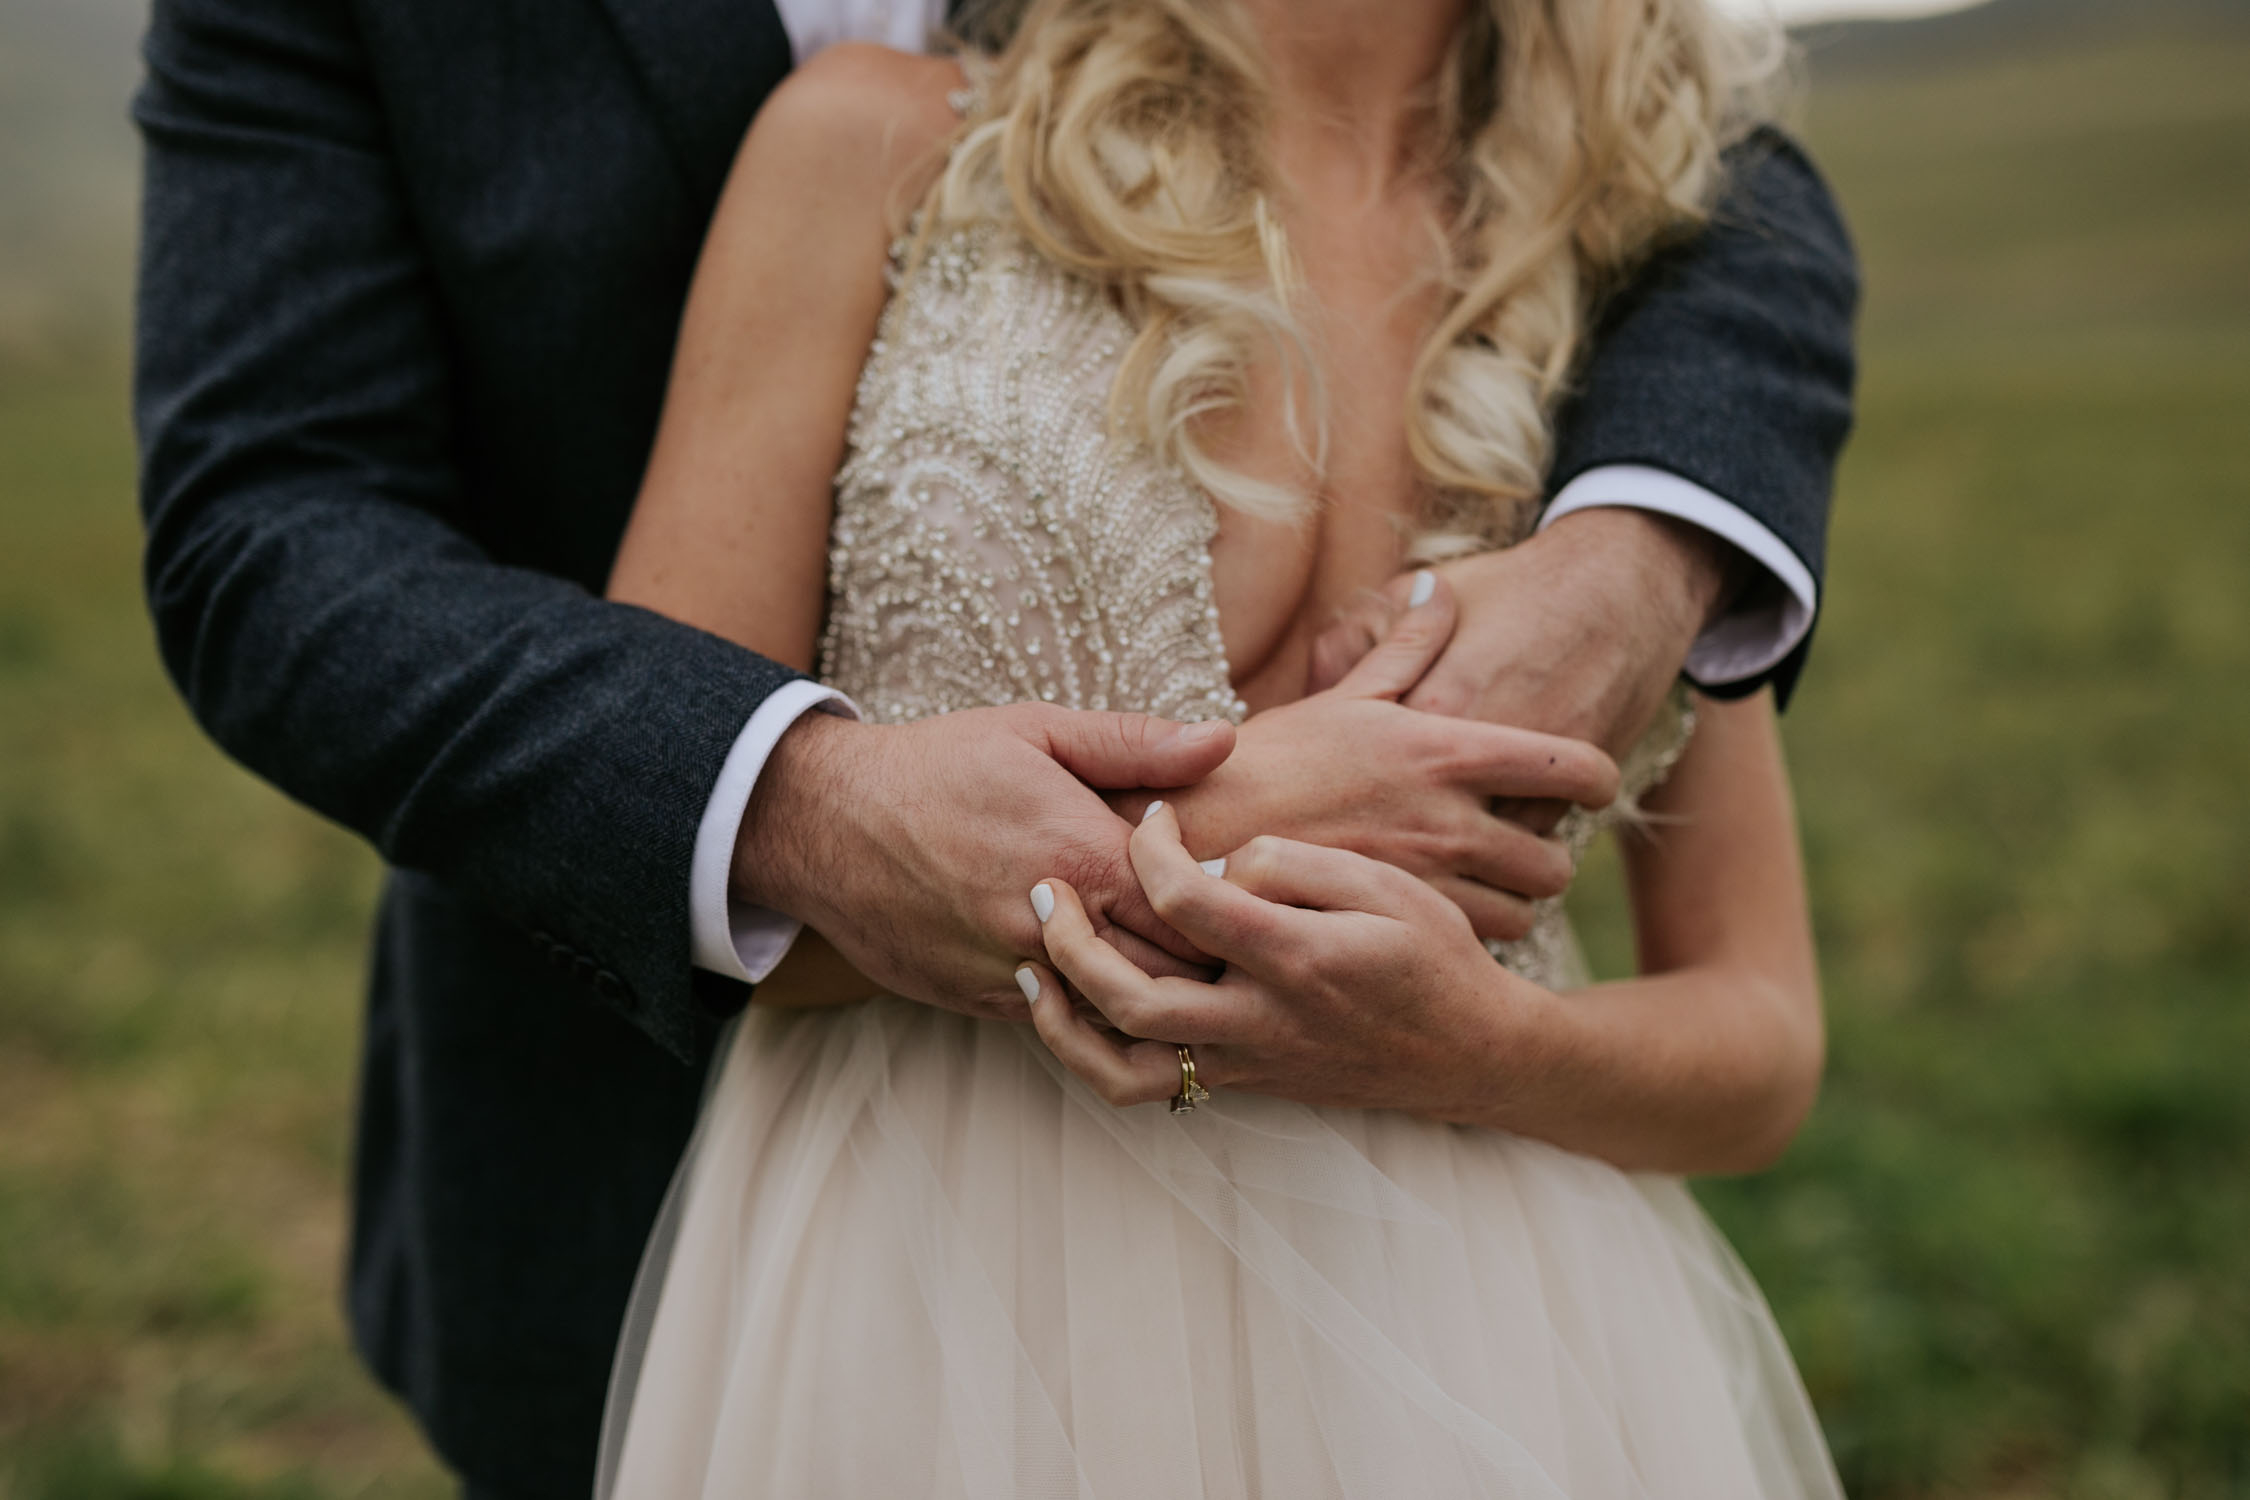 Close up photograph of bride and grooms hands at wedding. They are holding on to each other. Romantic and candid moment.